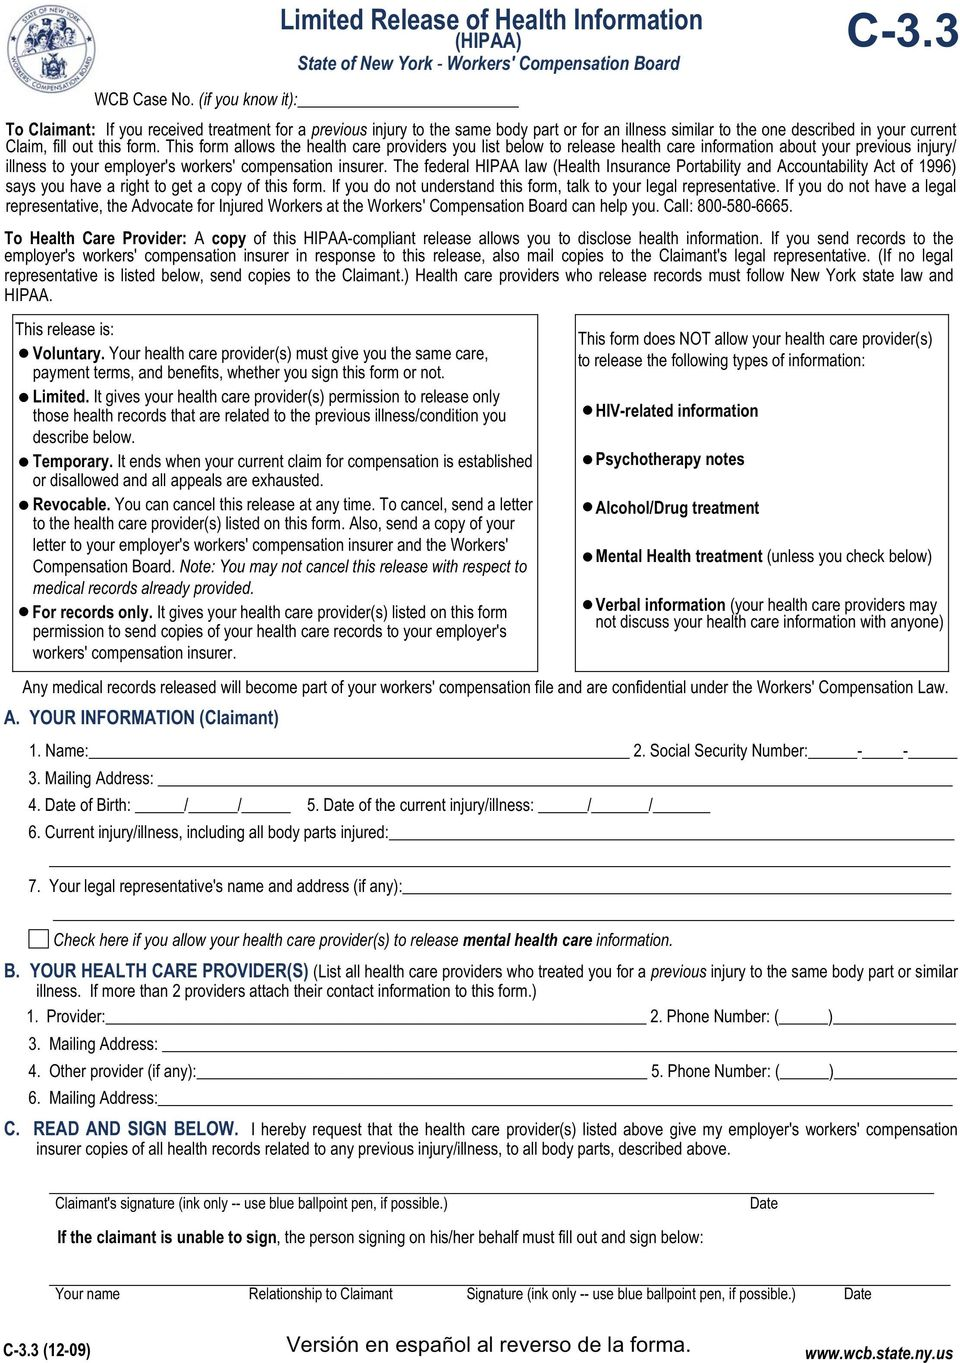 This form allows the health care providers you list below to release health care information about your previous injury/ illness to your employer's workers' compensation insurer.